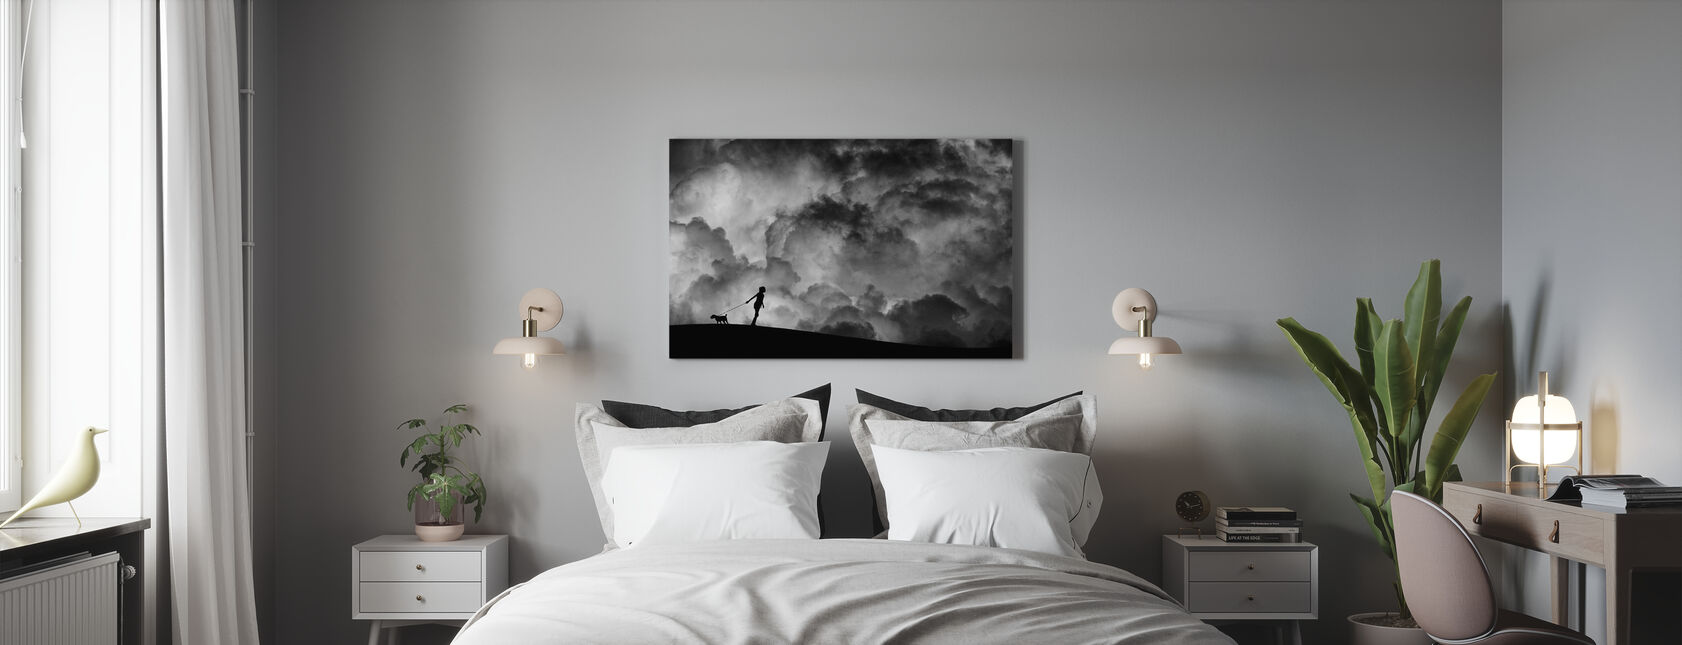 Prelude to the Dream, black and white - Canvas print - Bedroom